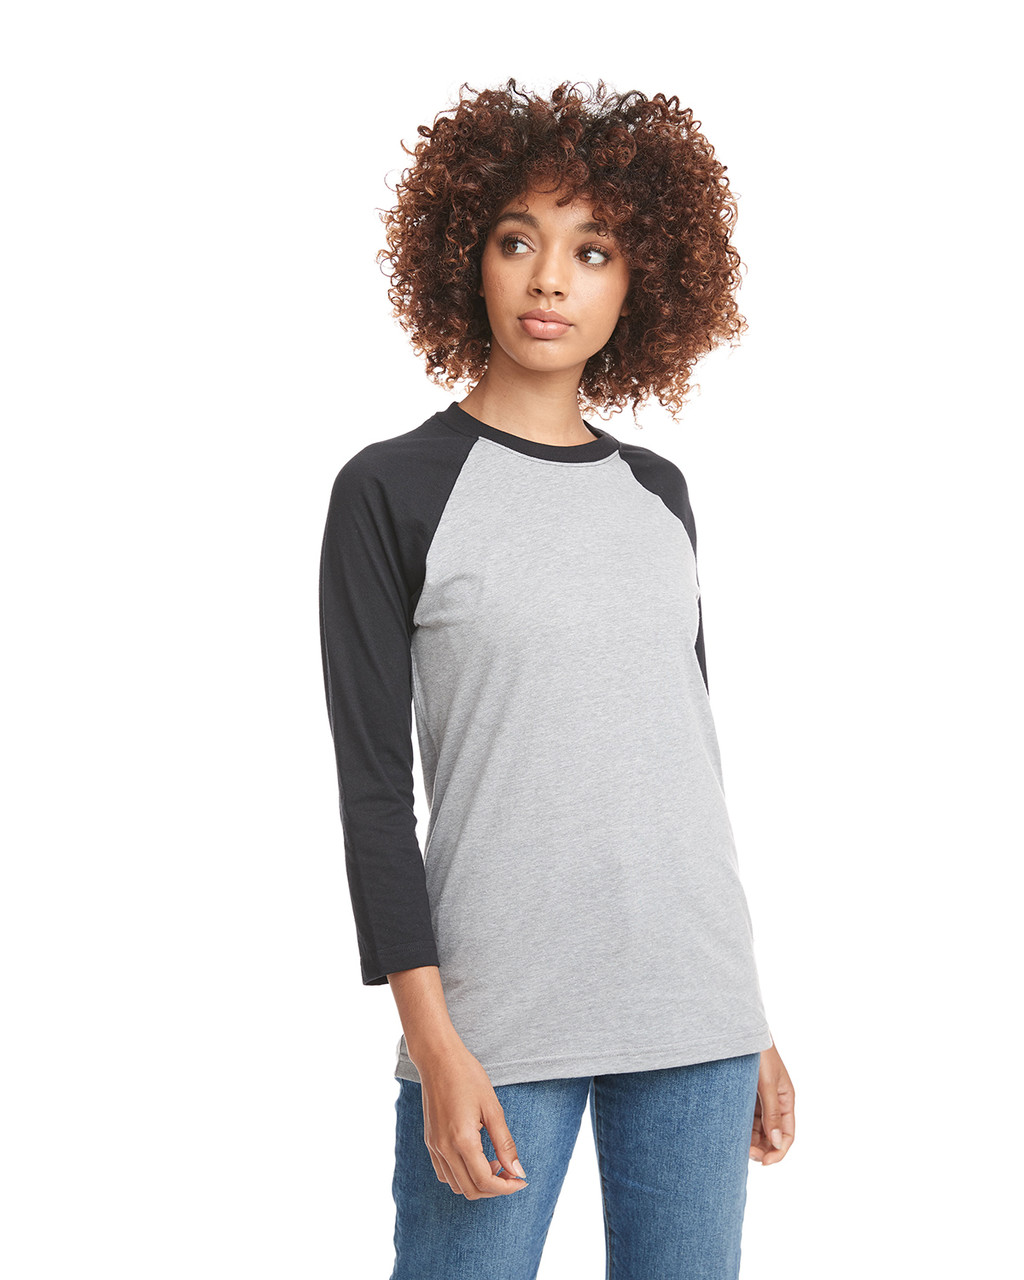 Black/Dark Heather Grey - 6251 Next Level Unisex CVC 3/4 Sleeve Raglan Baseball T-Shirt | BlankClothing.ca